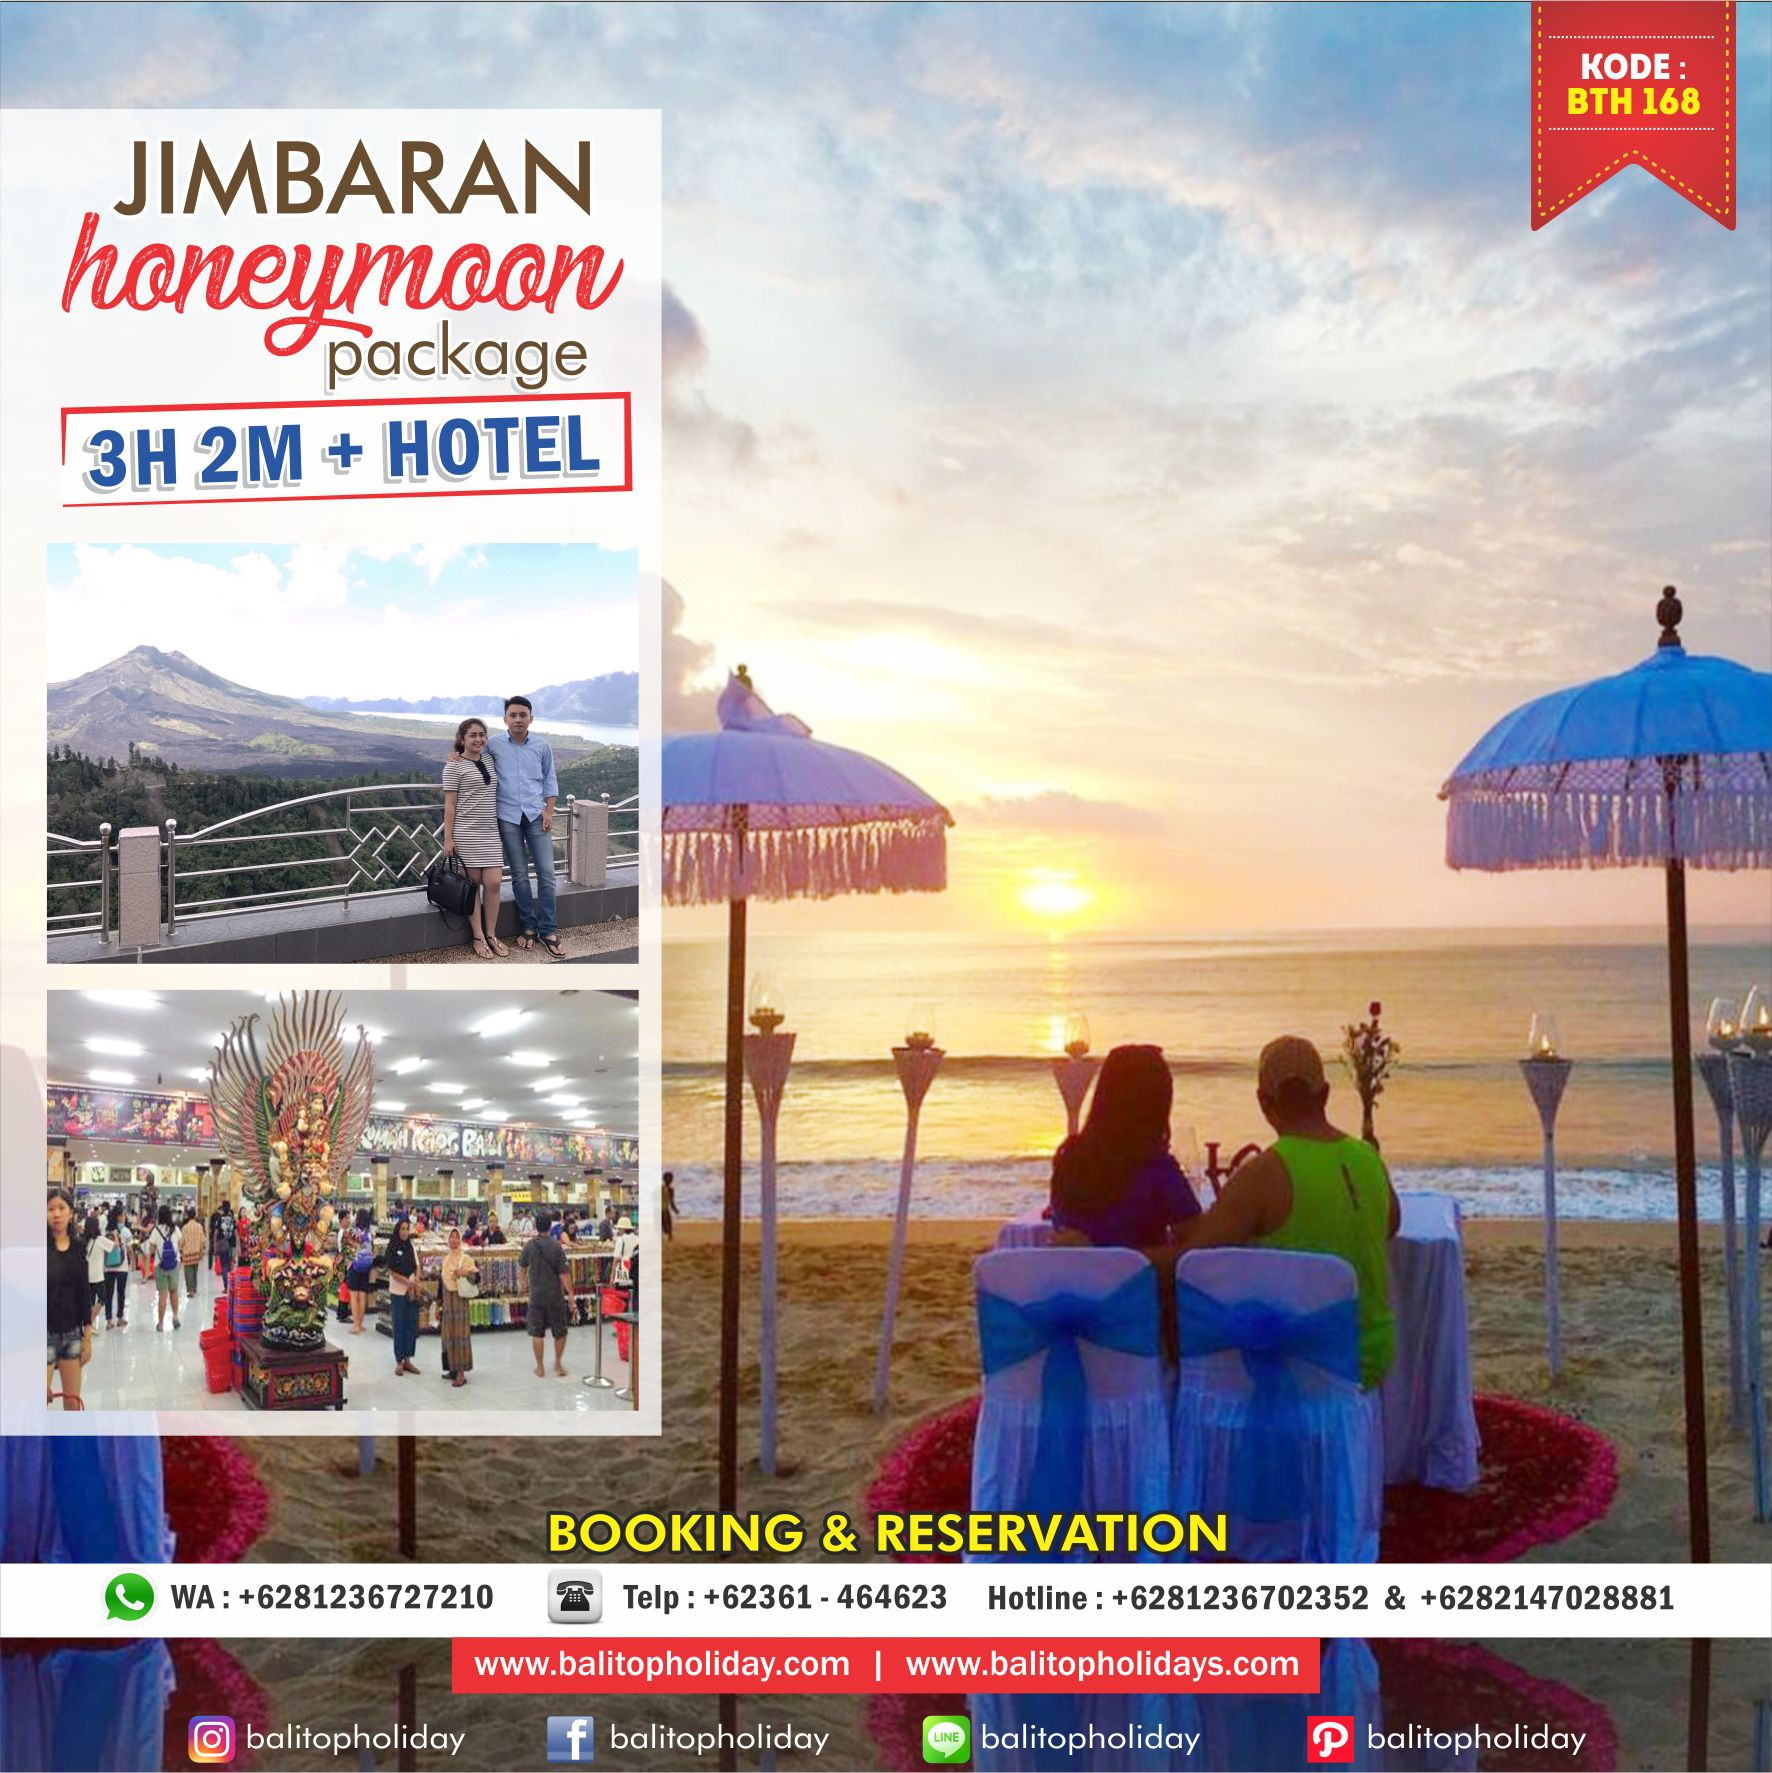 promo honeymoon jimbaran BTH